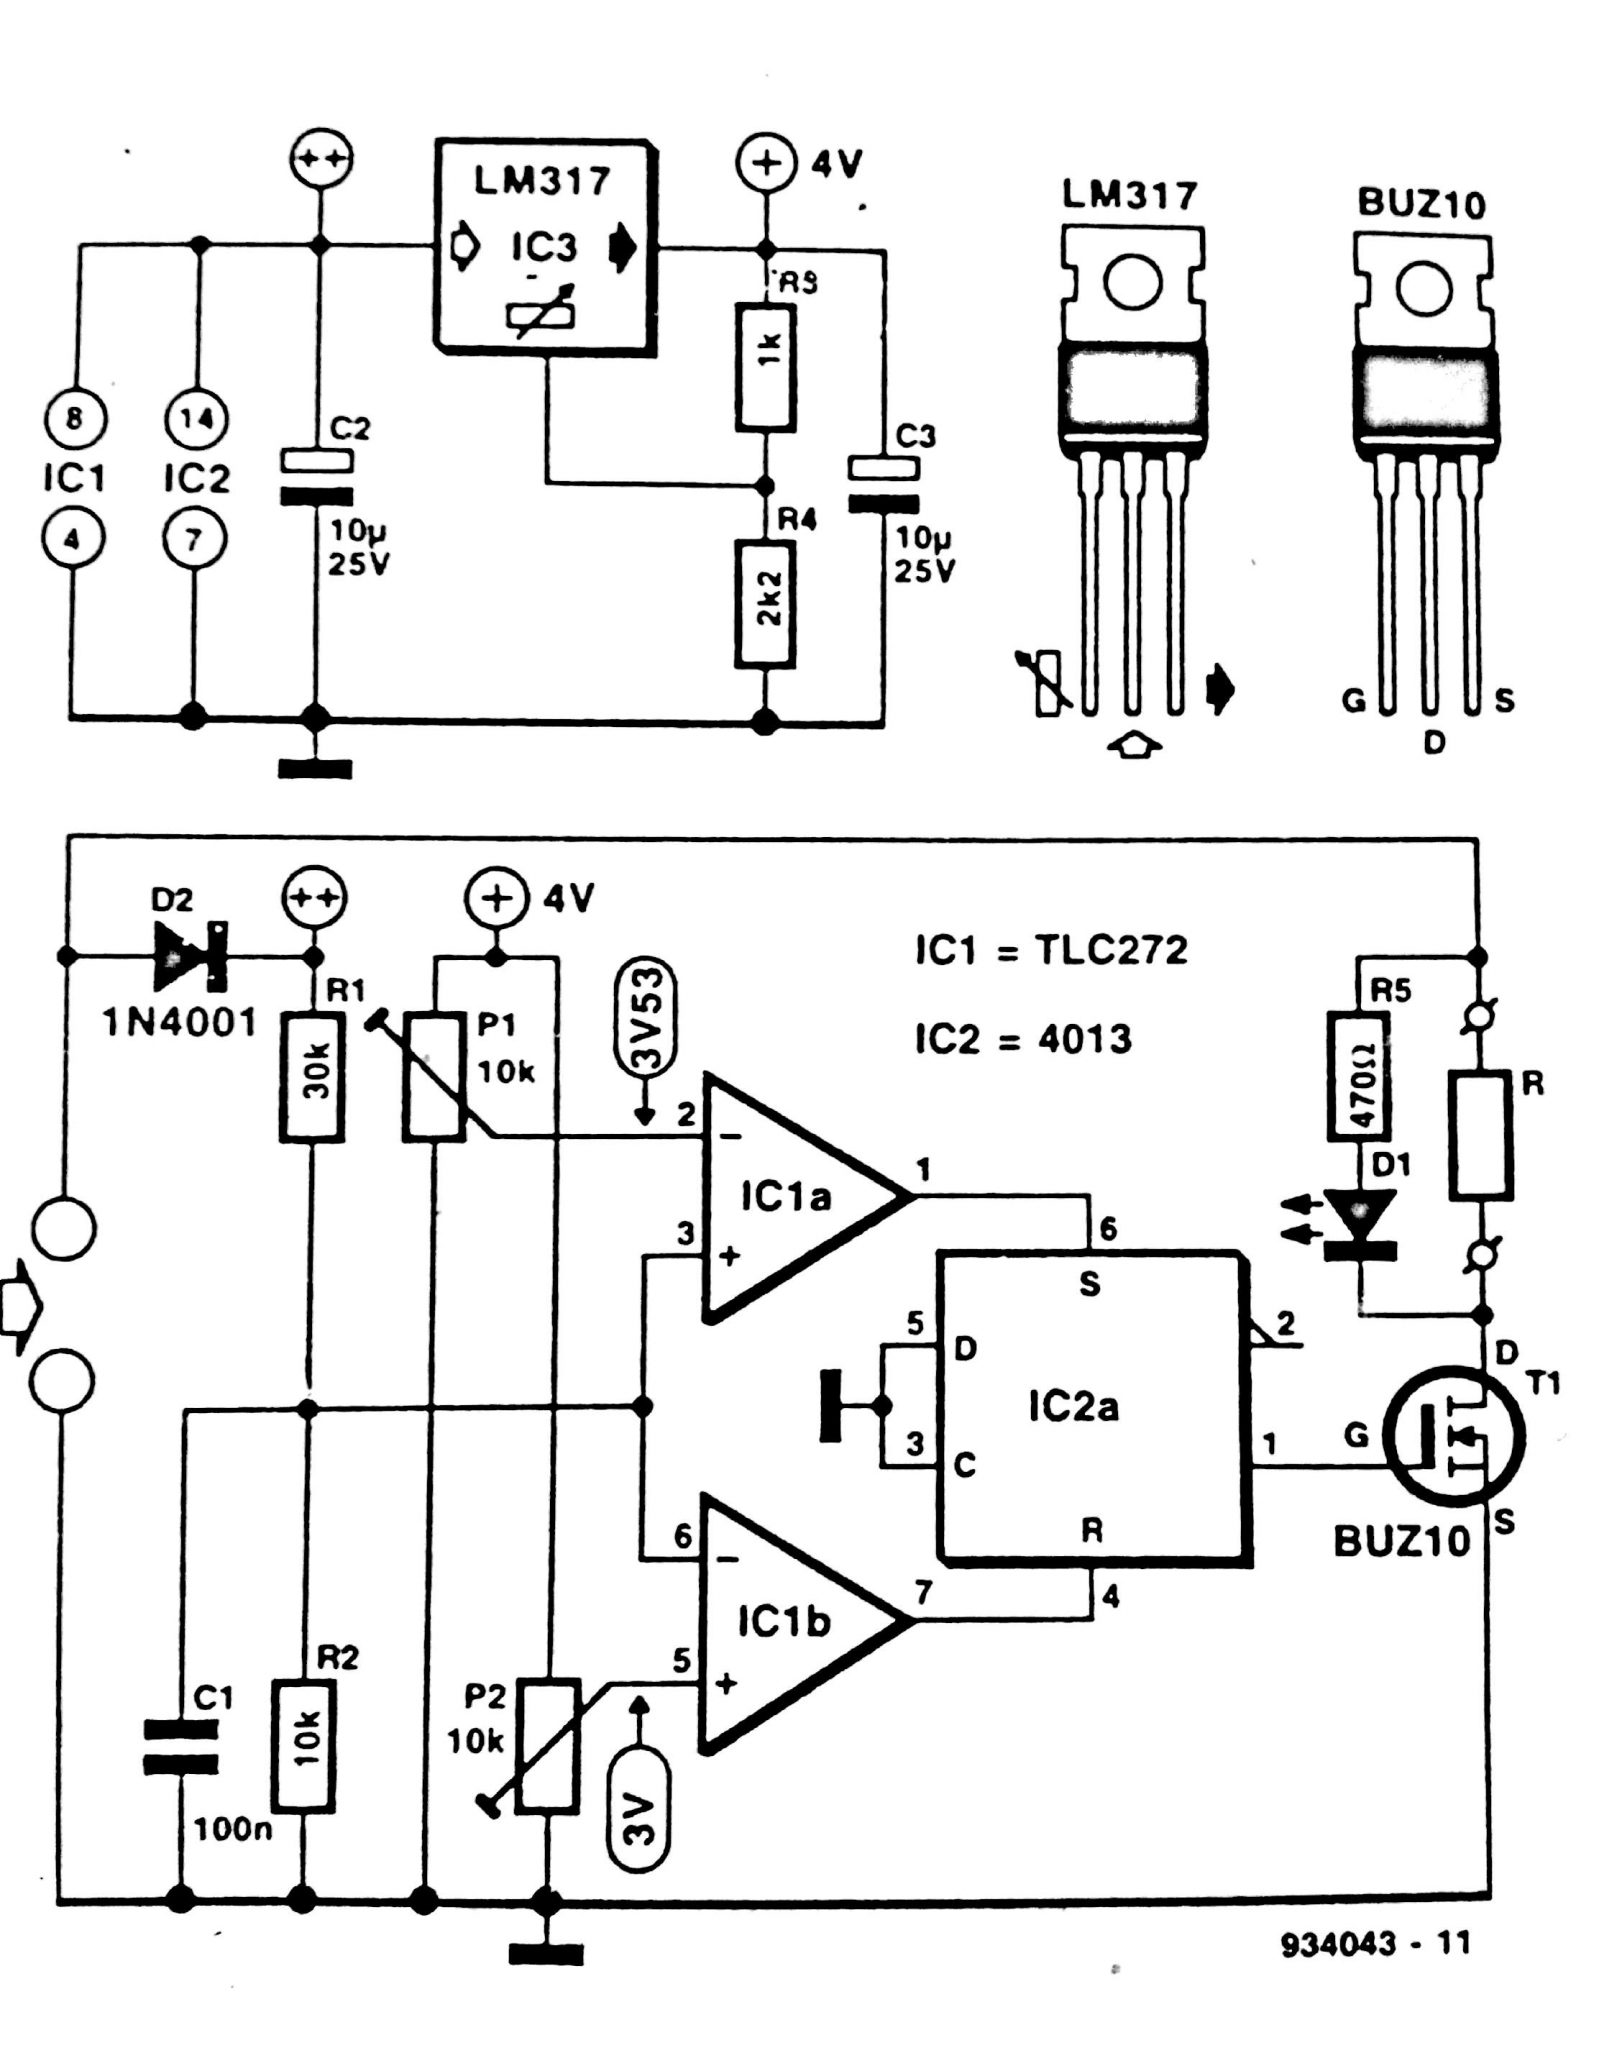 Magnificent T586b Wiring Diagram Pictures Inspiration - Electrical ...